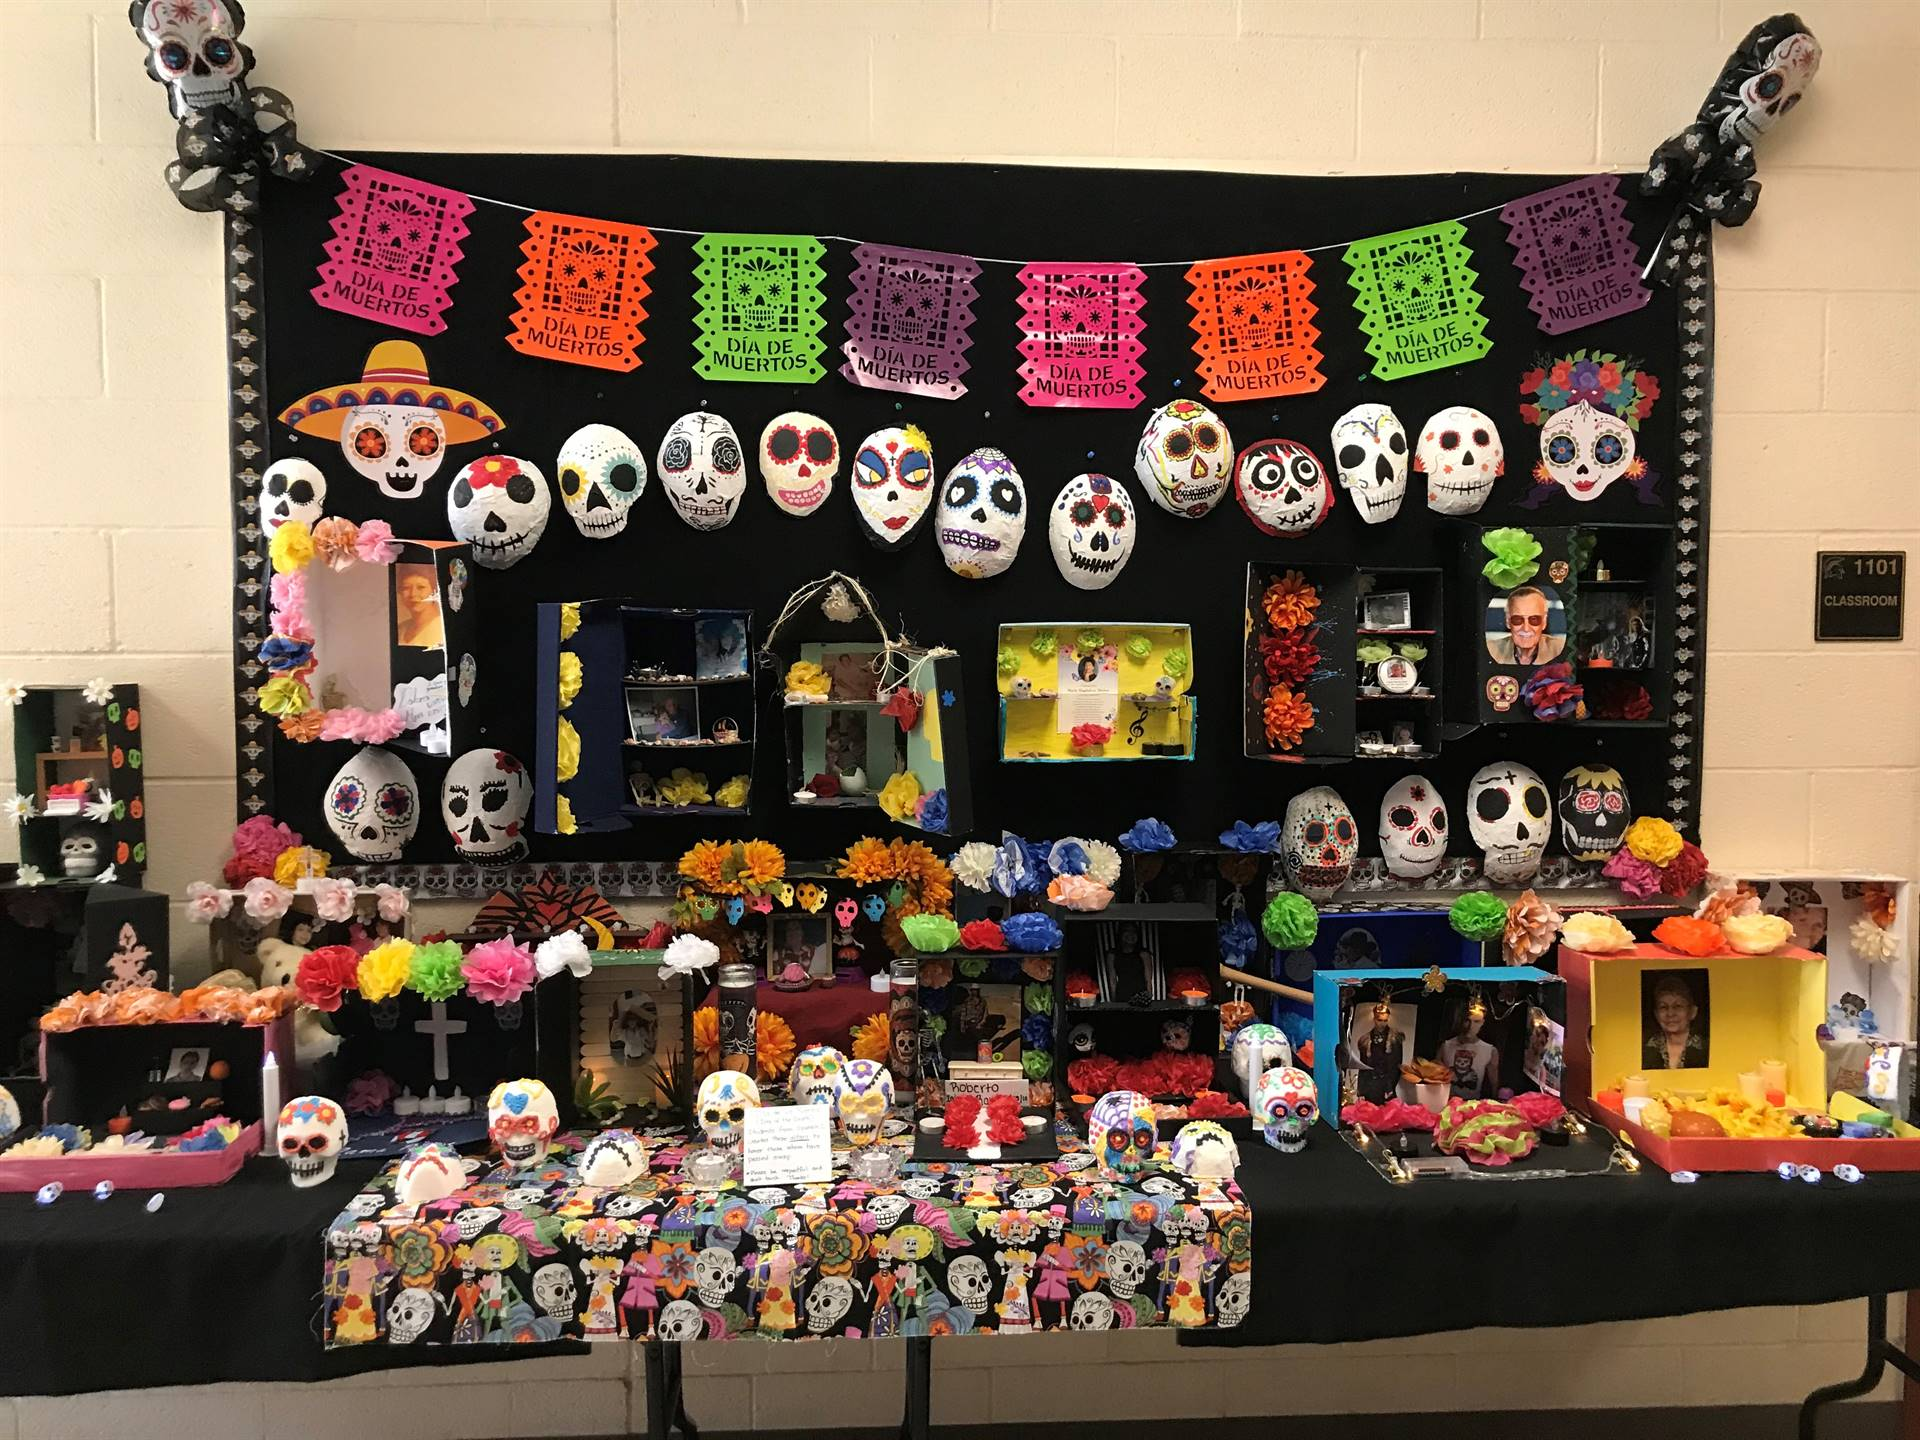 Spanish Classes Day Of Dead 20191031 (1)